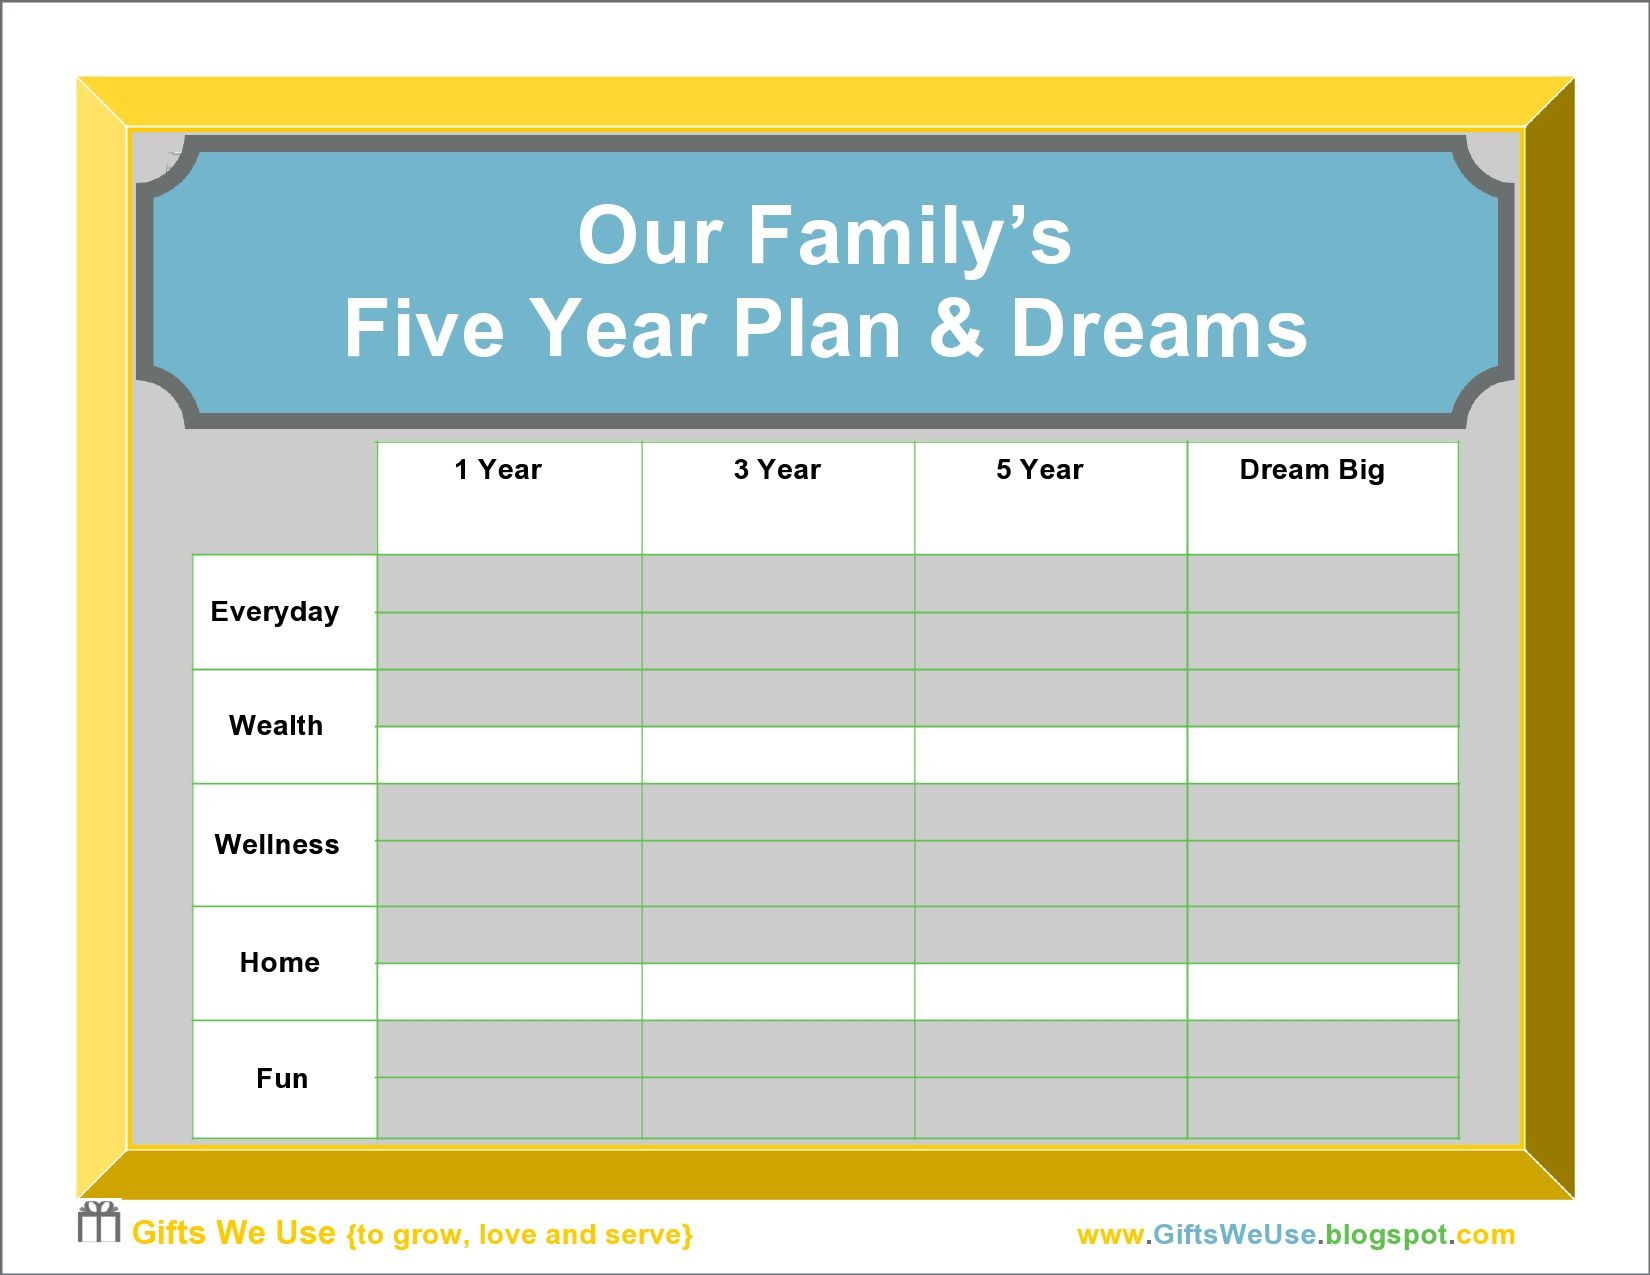 002 Incredible 5 Year Plan Template High Def  Pdf Busines For CoupleFull